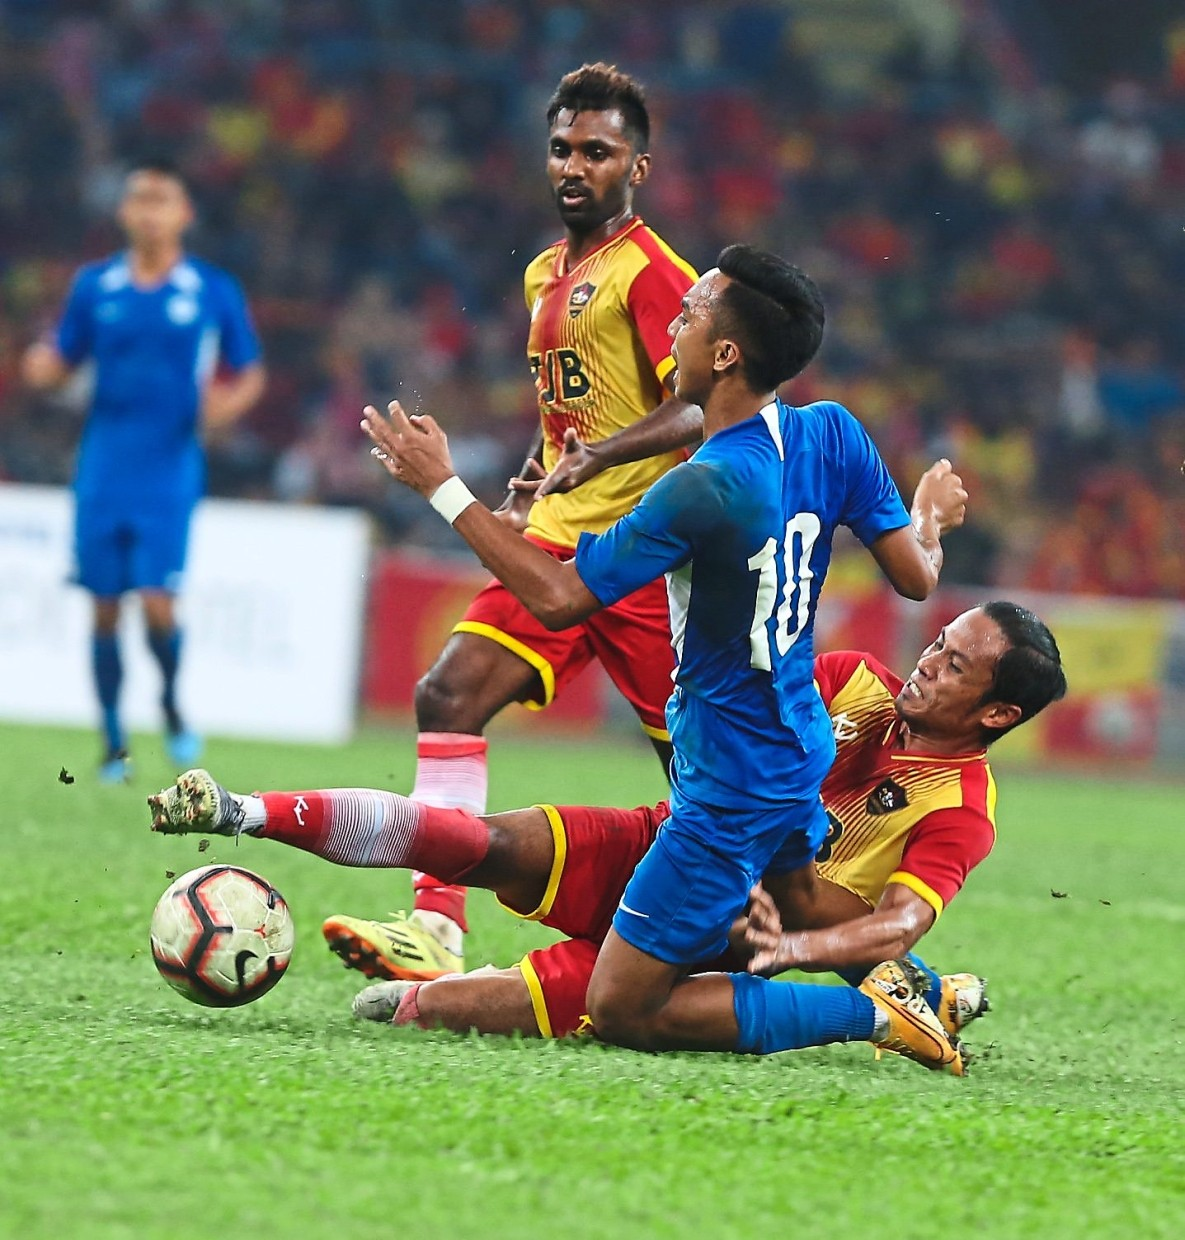 Singapore Selection's Mohd Faris Ramli (in blue) being tackled by Selangor's Khyril Muhymeen Zamri (on the ground) during the match.